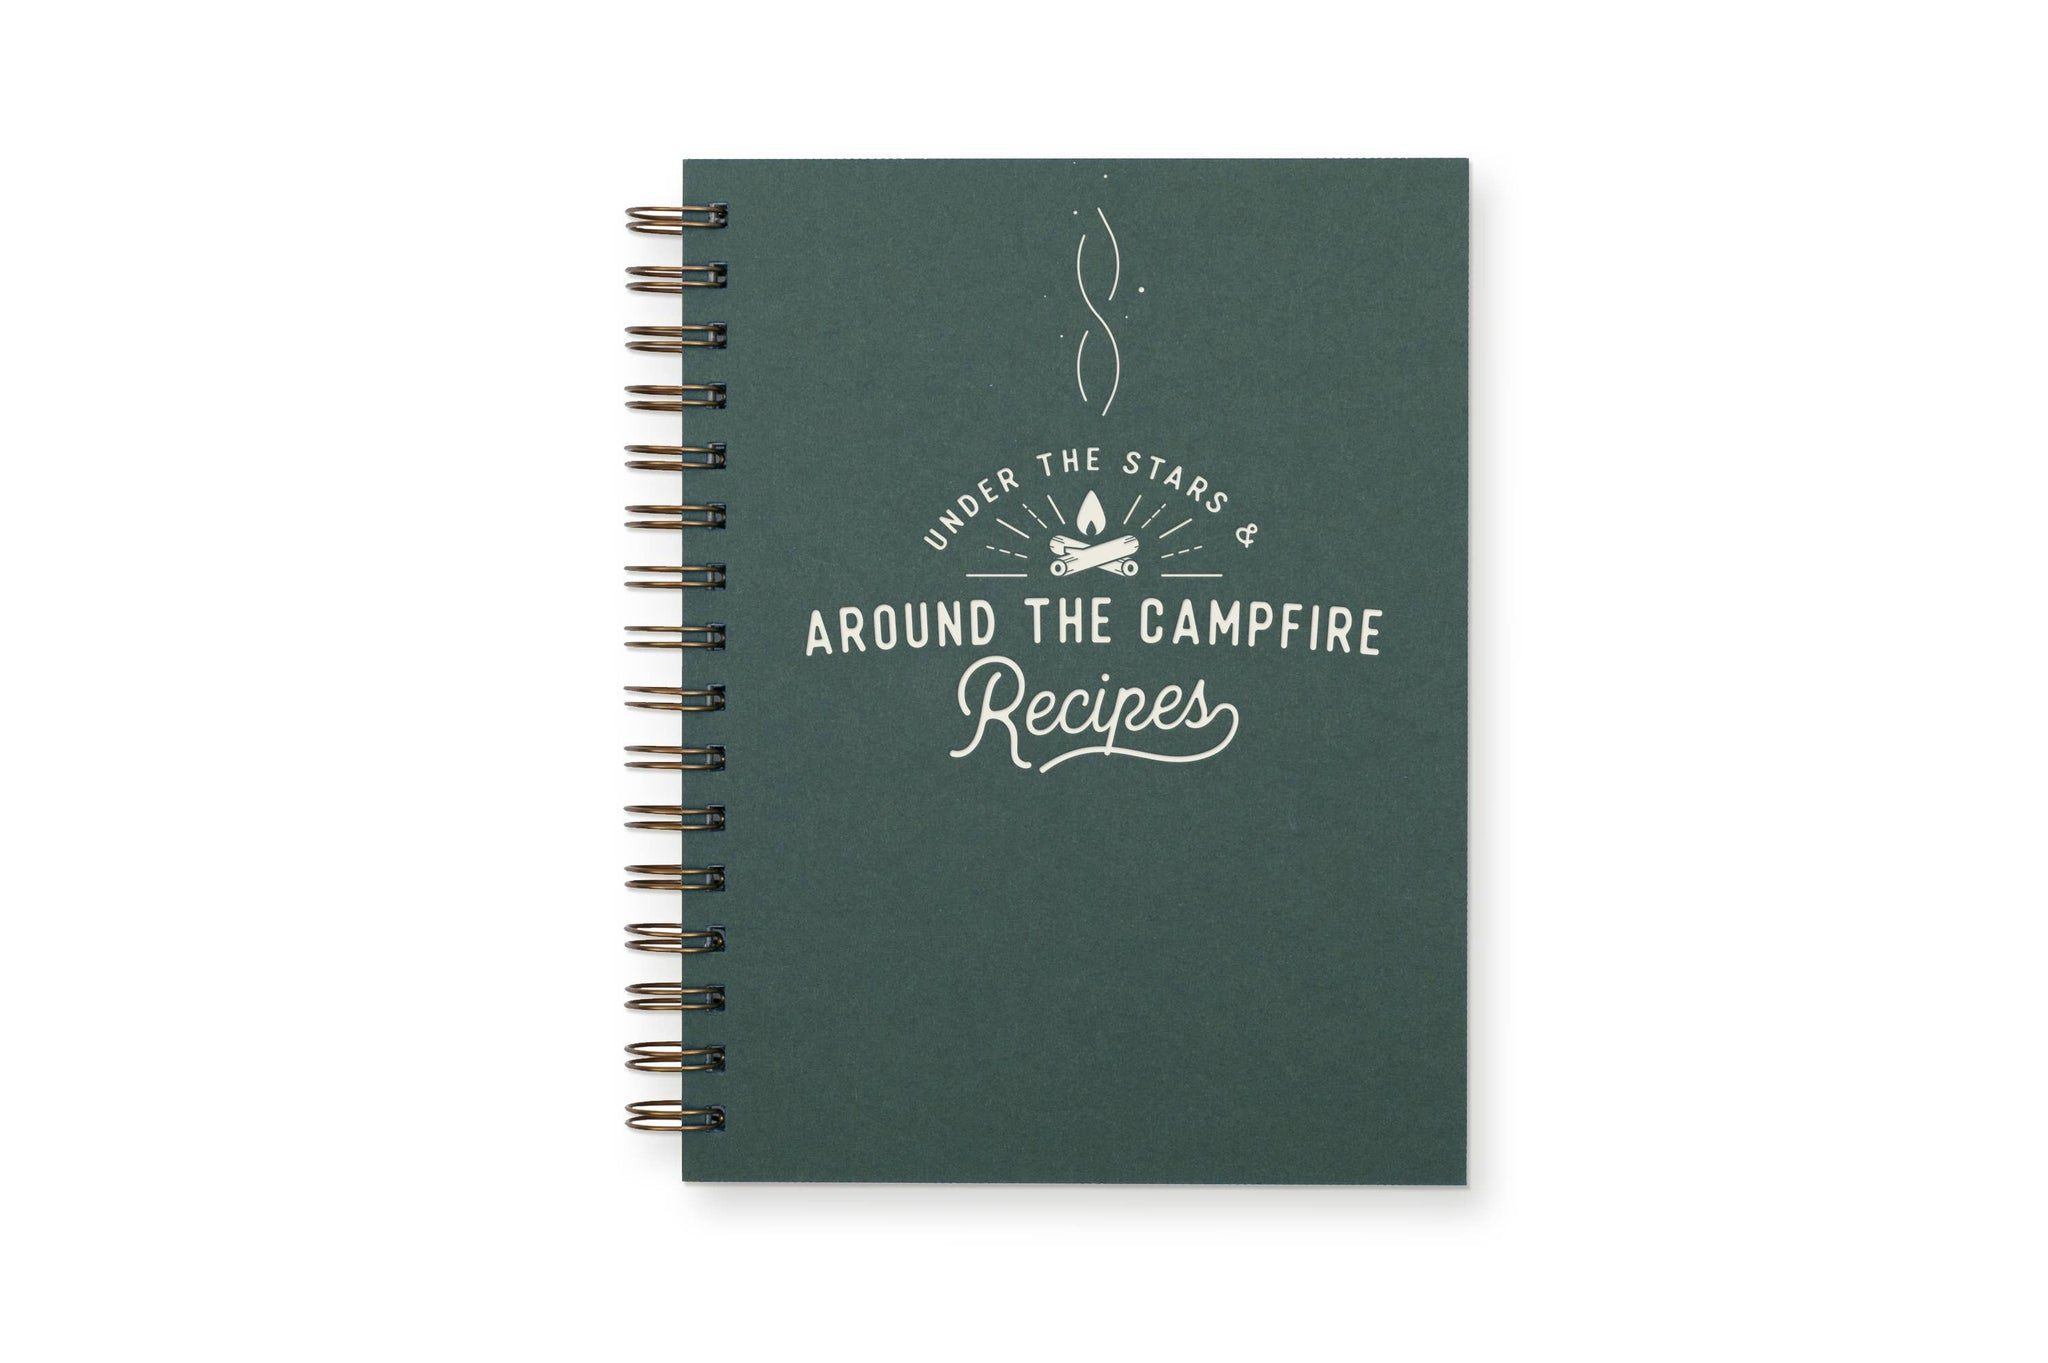 Around the Campfire Recipe Cookbook